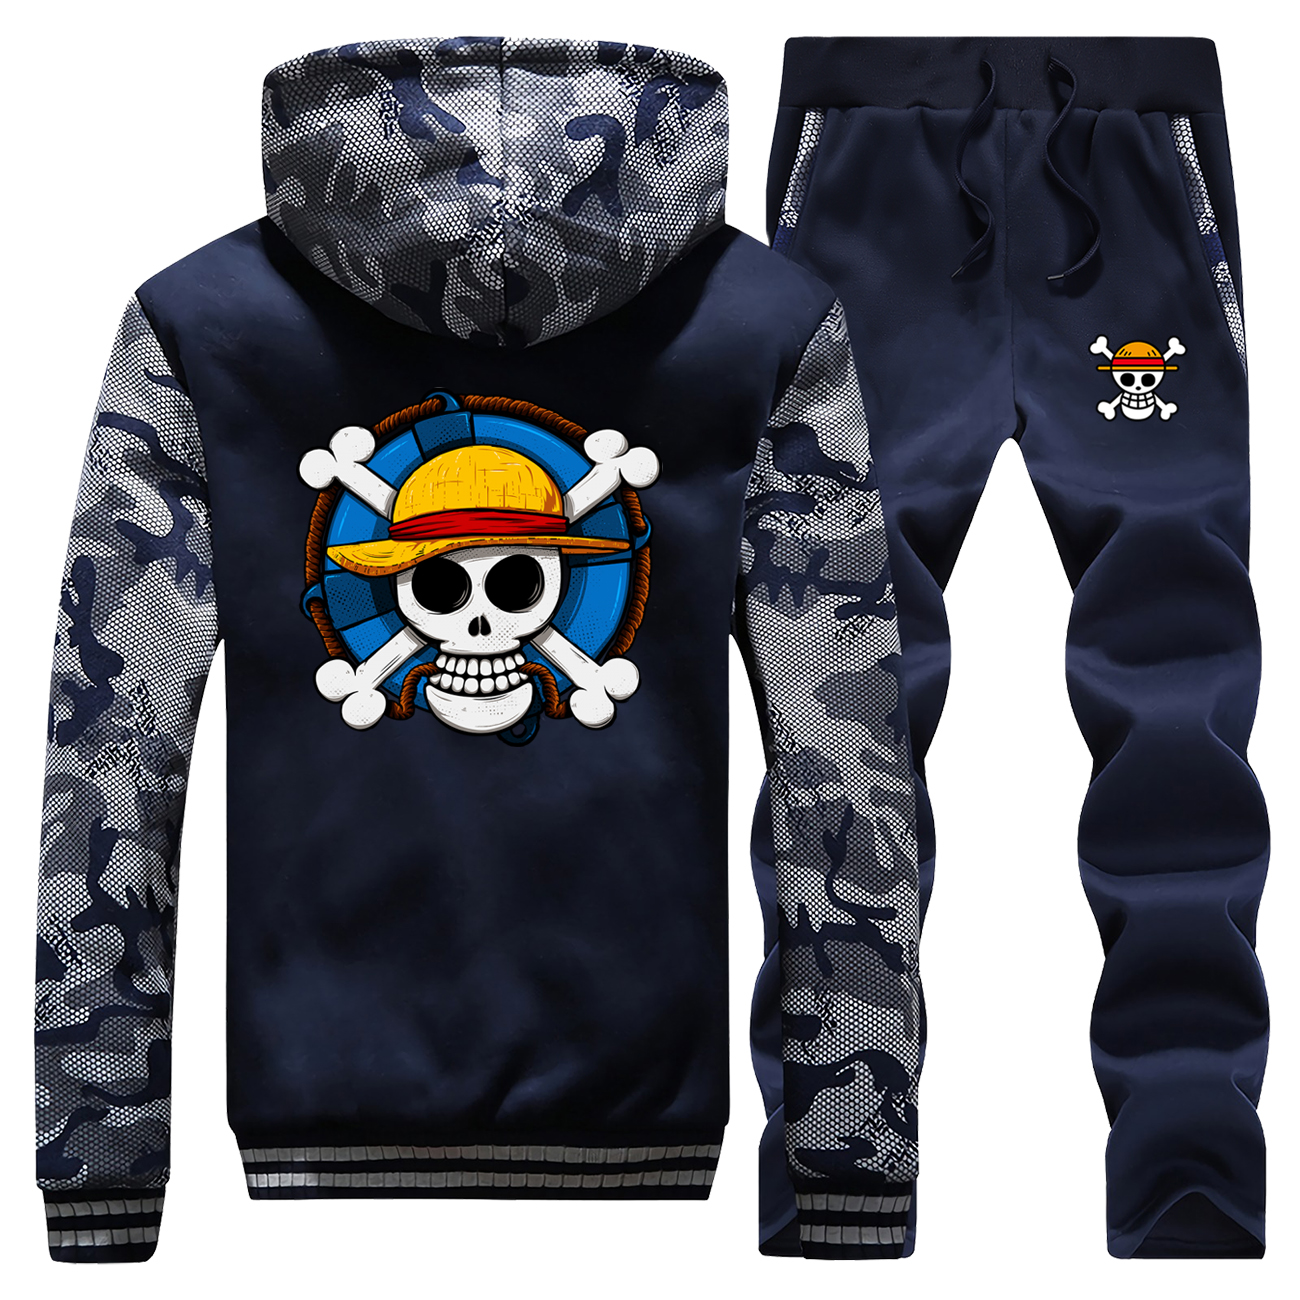 Skull Anime Hoodies Sweatshirts Mens One Piece Luffy Thick Tracksuit Hip Hop Zipper Winter Jacket+Pants Men Japanese Streetwear